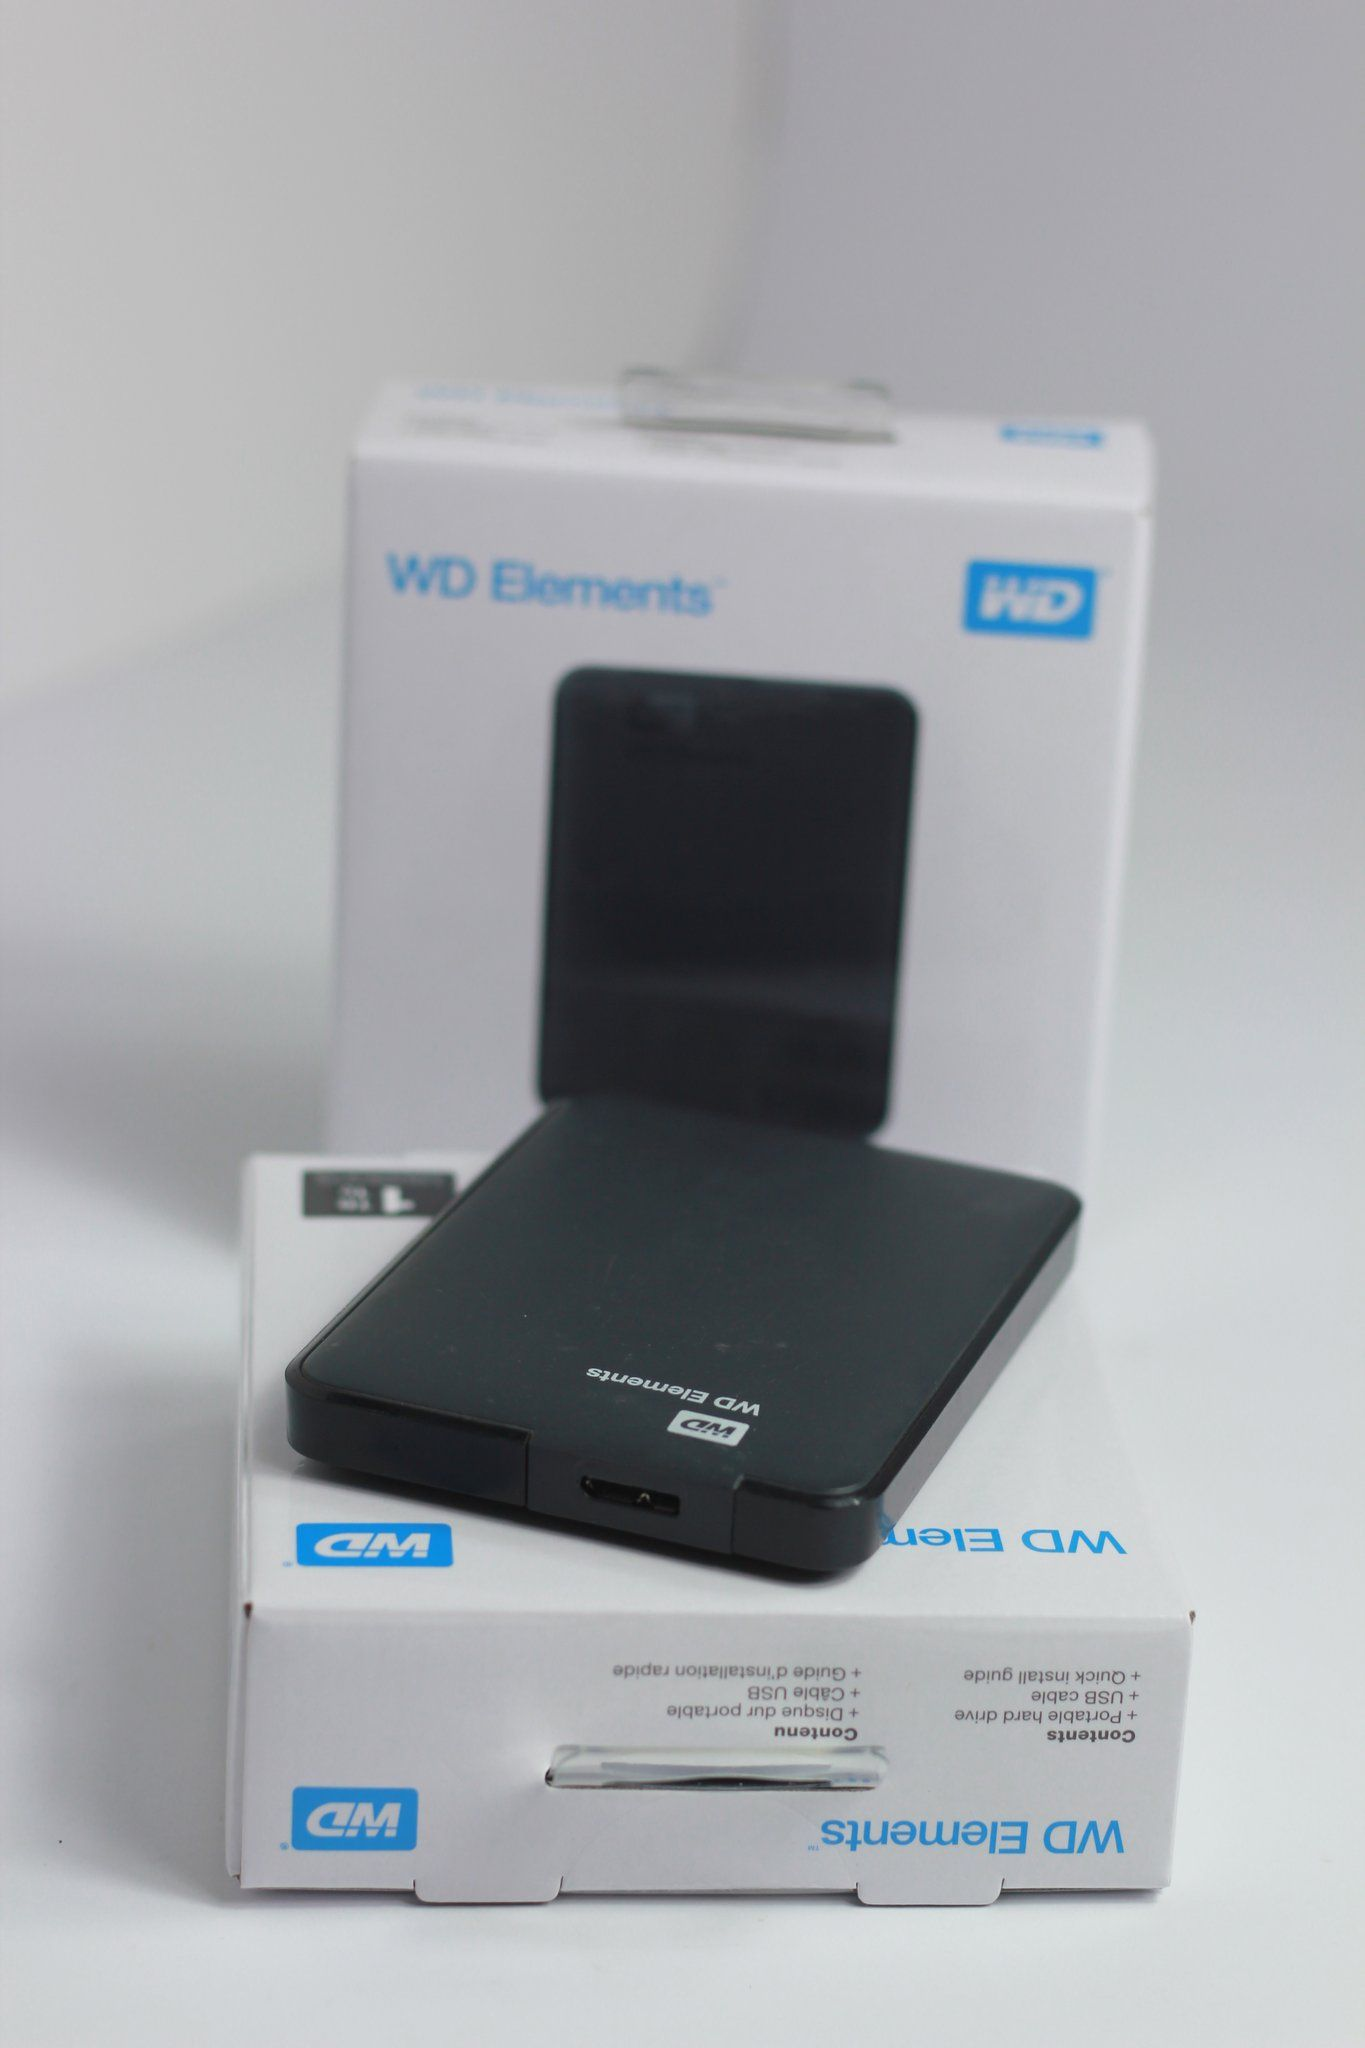 WD Elements Portable Hard Disk 1TB | Optimum Copy Center